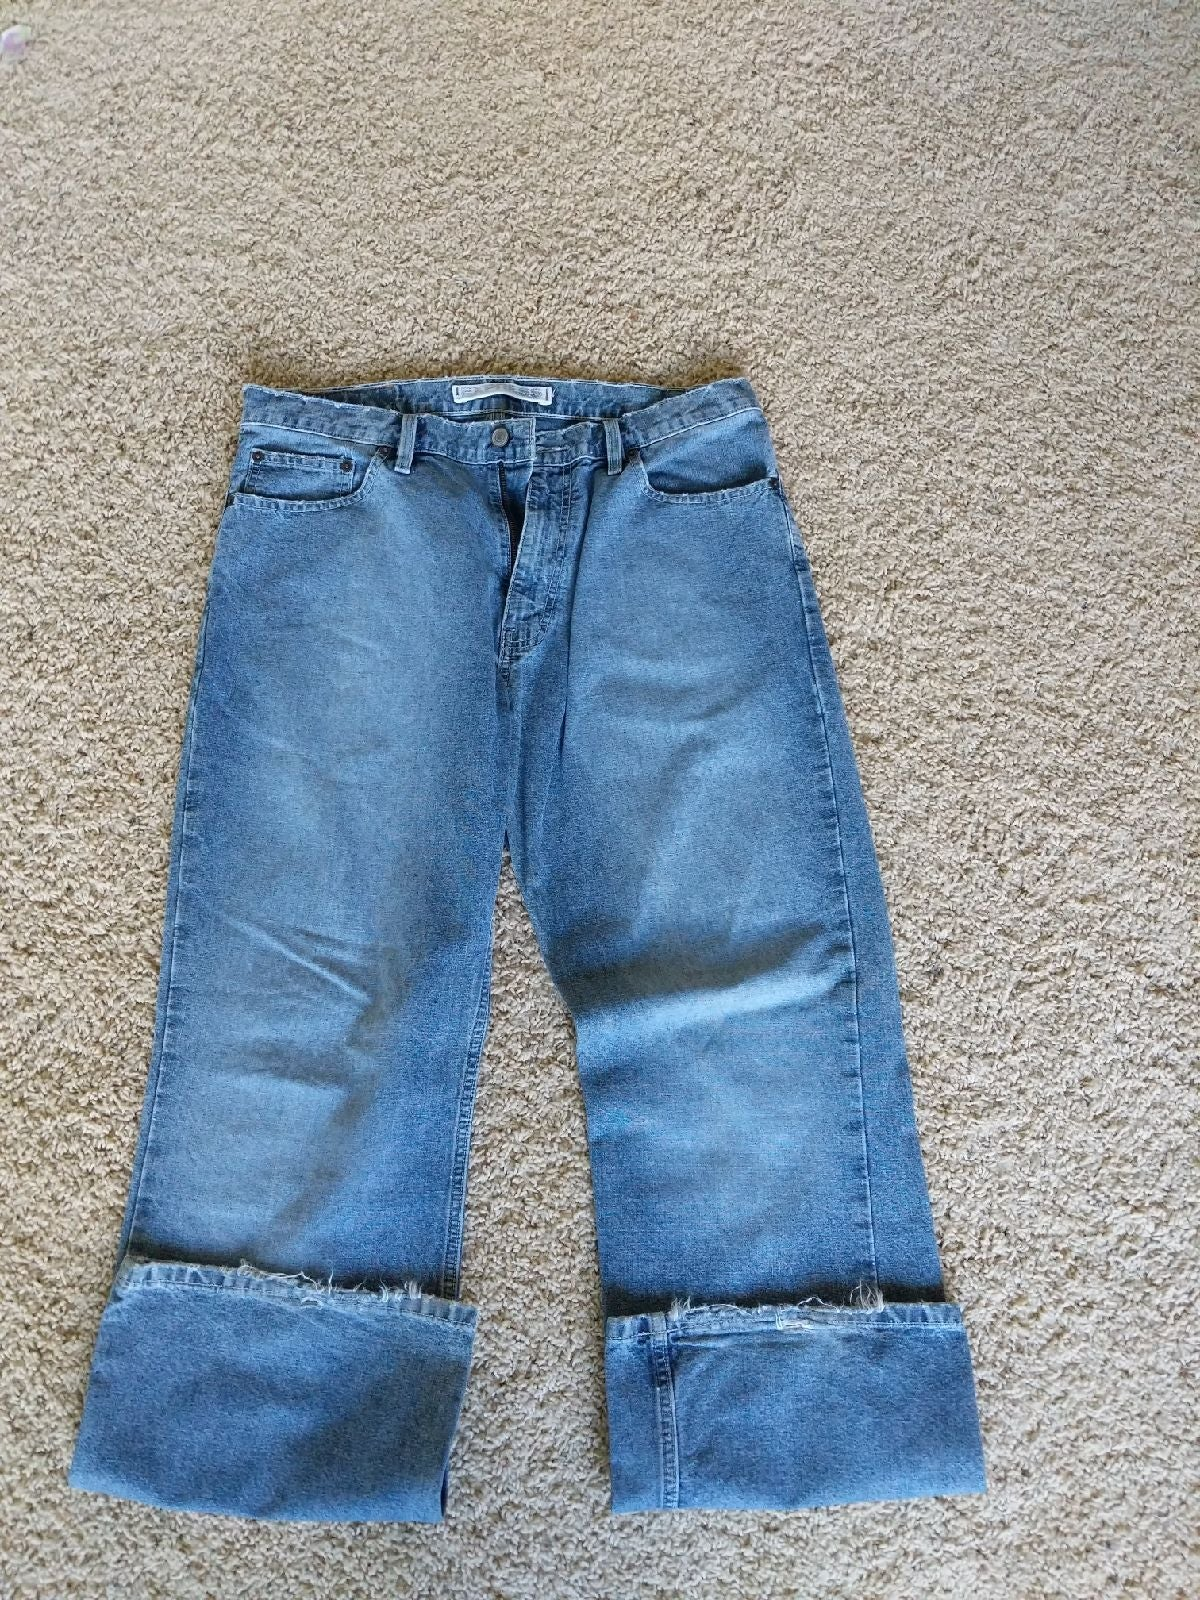 Express Precision Fit Jeans Size 34 30